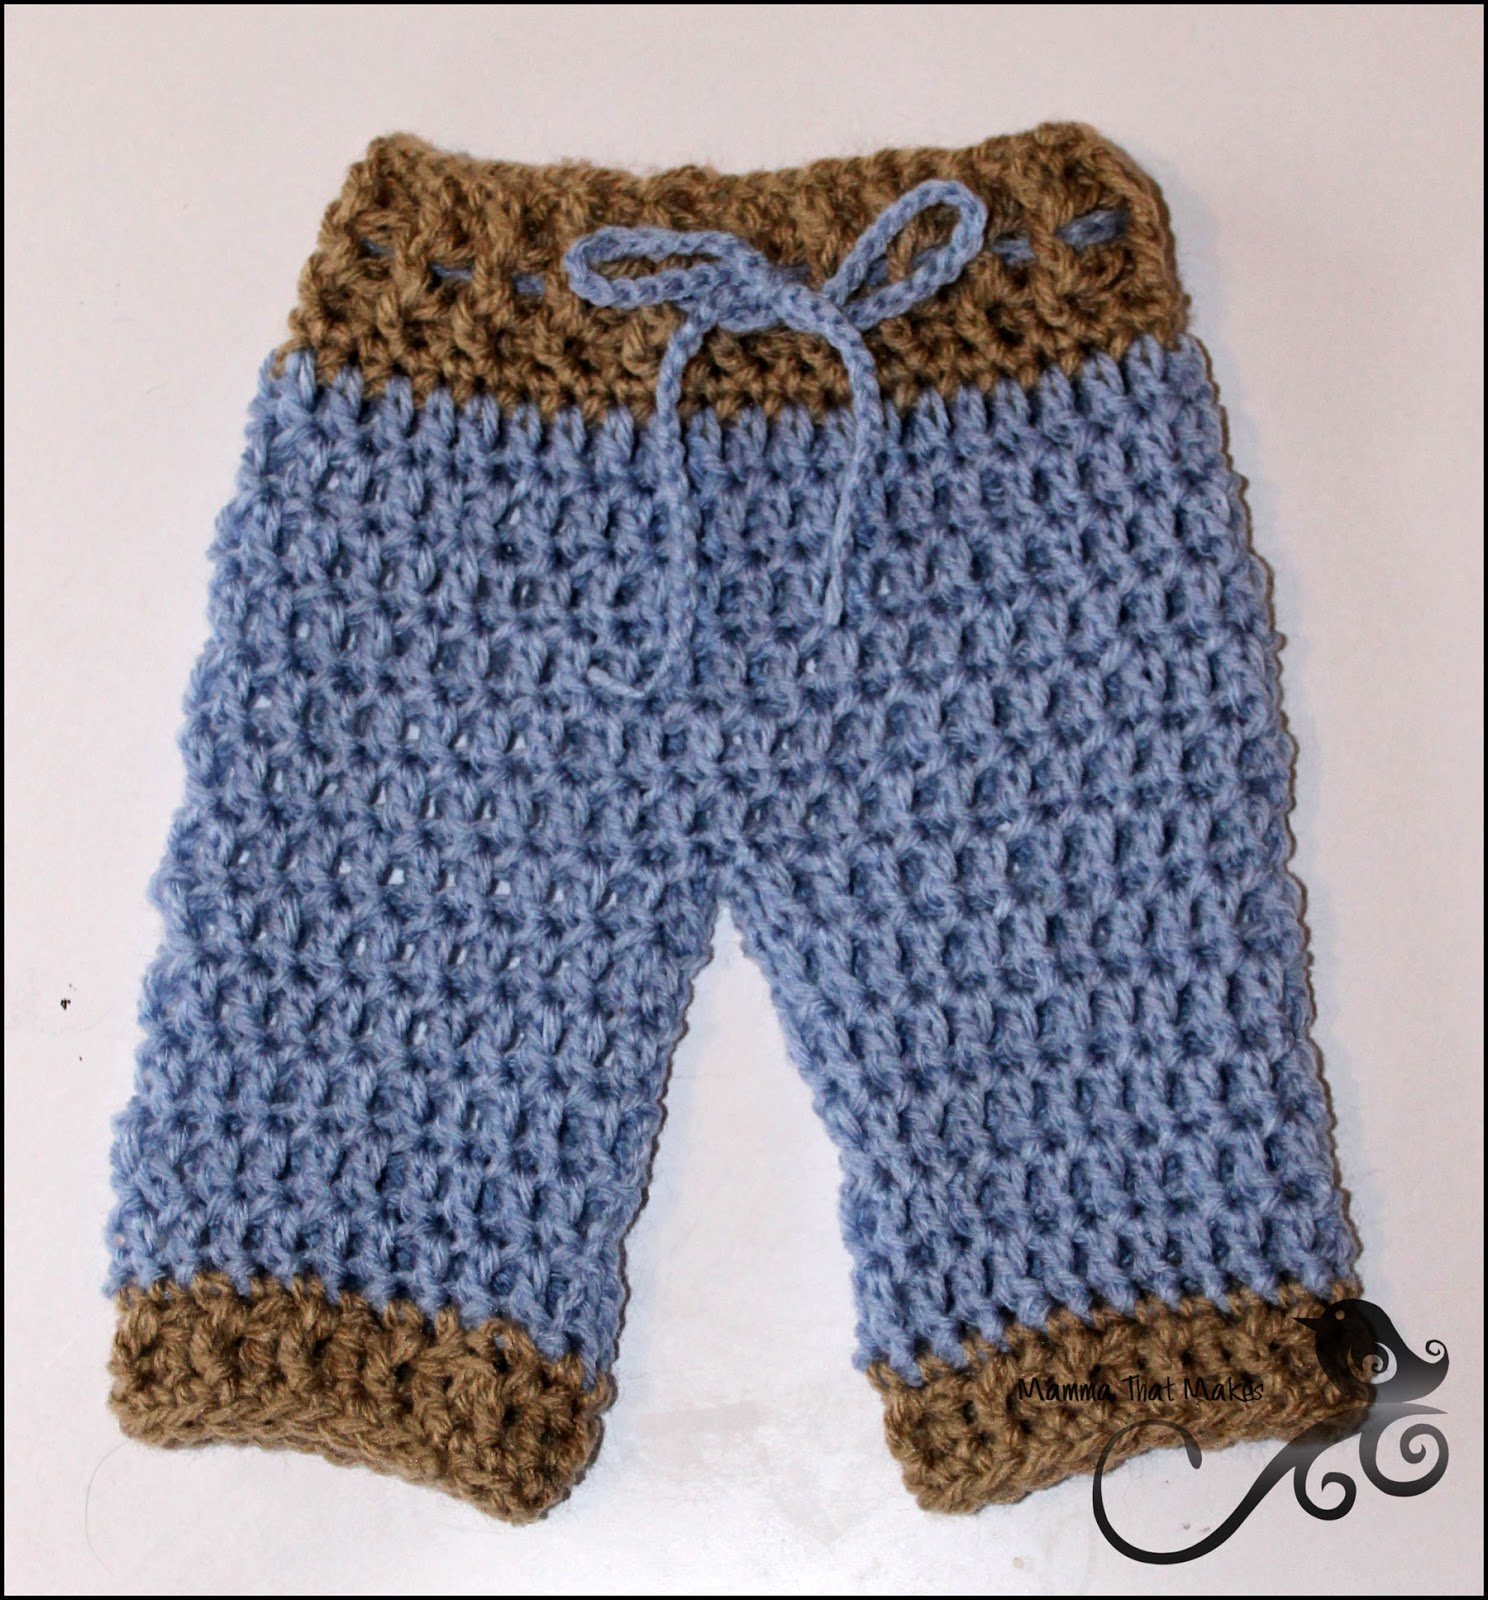 Crochet Pants : Mamma That Makes: Lil Pants - Free Pattern